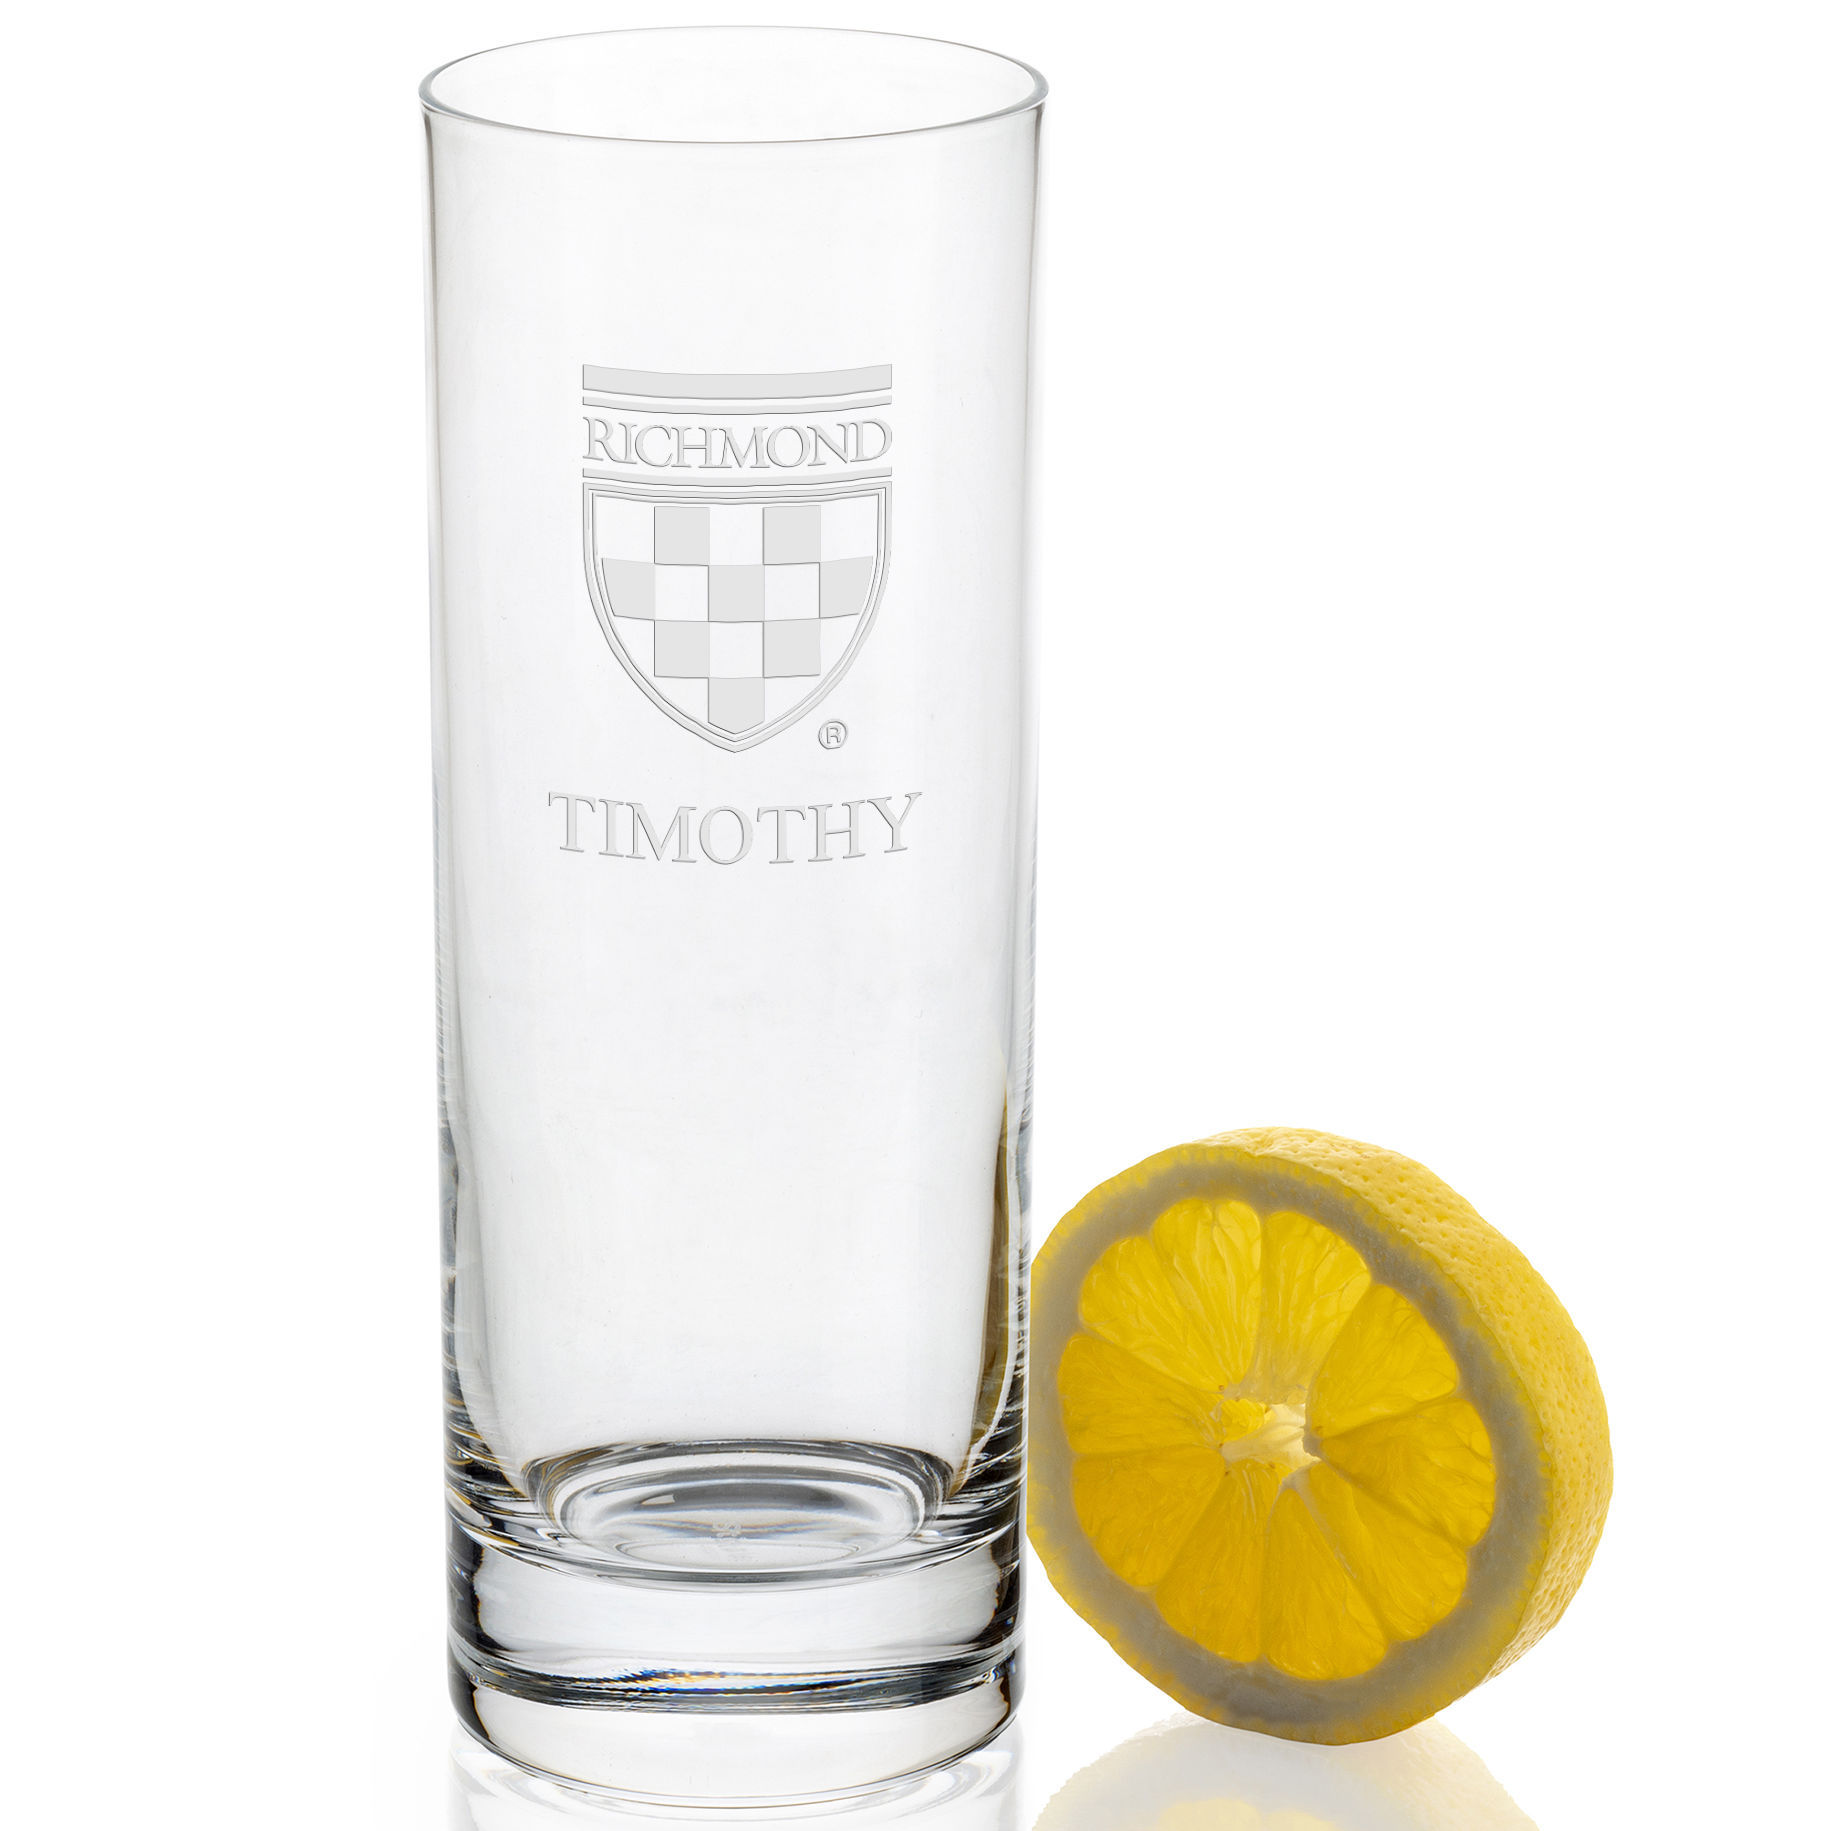 University of Richmond Iced Beverage Glasses - Set of 4 - Image 2